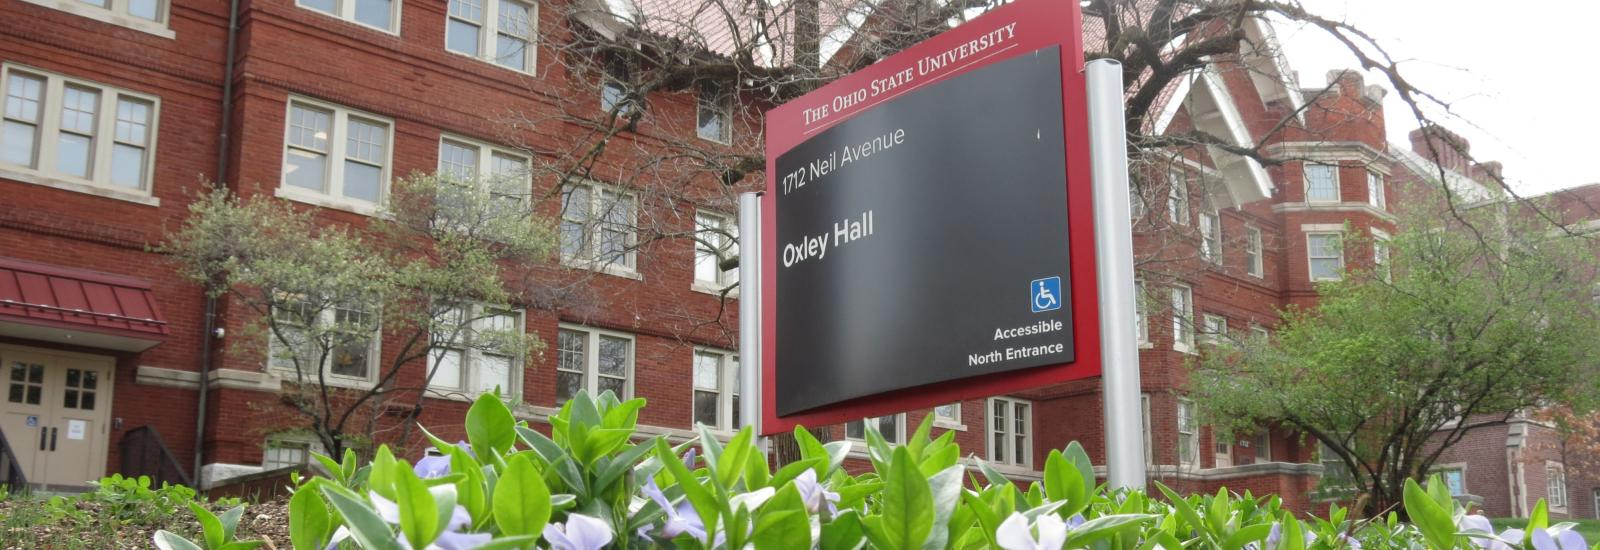 Oxley Hall sign, with building in background and spring flowers in foreground